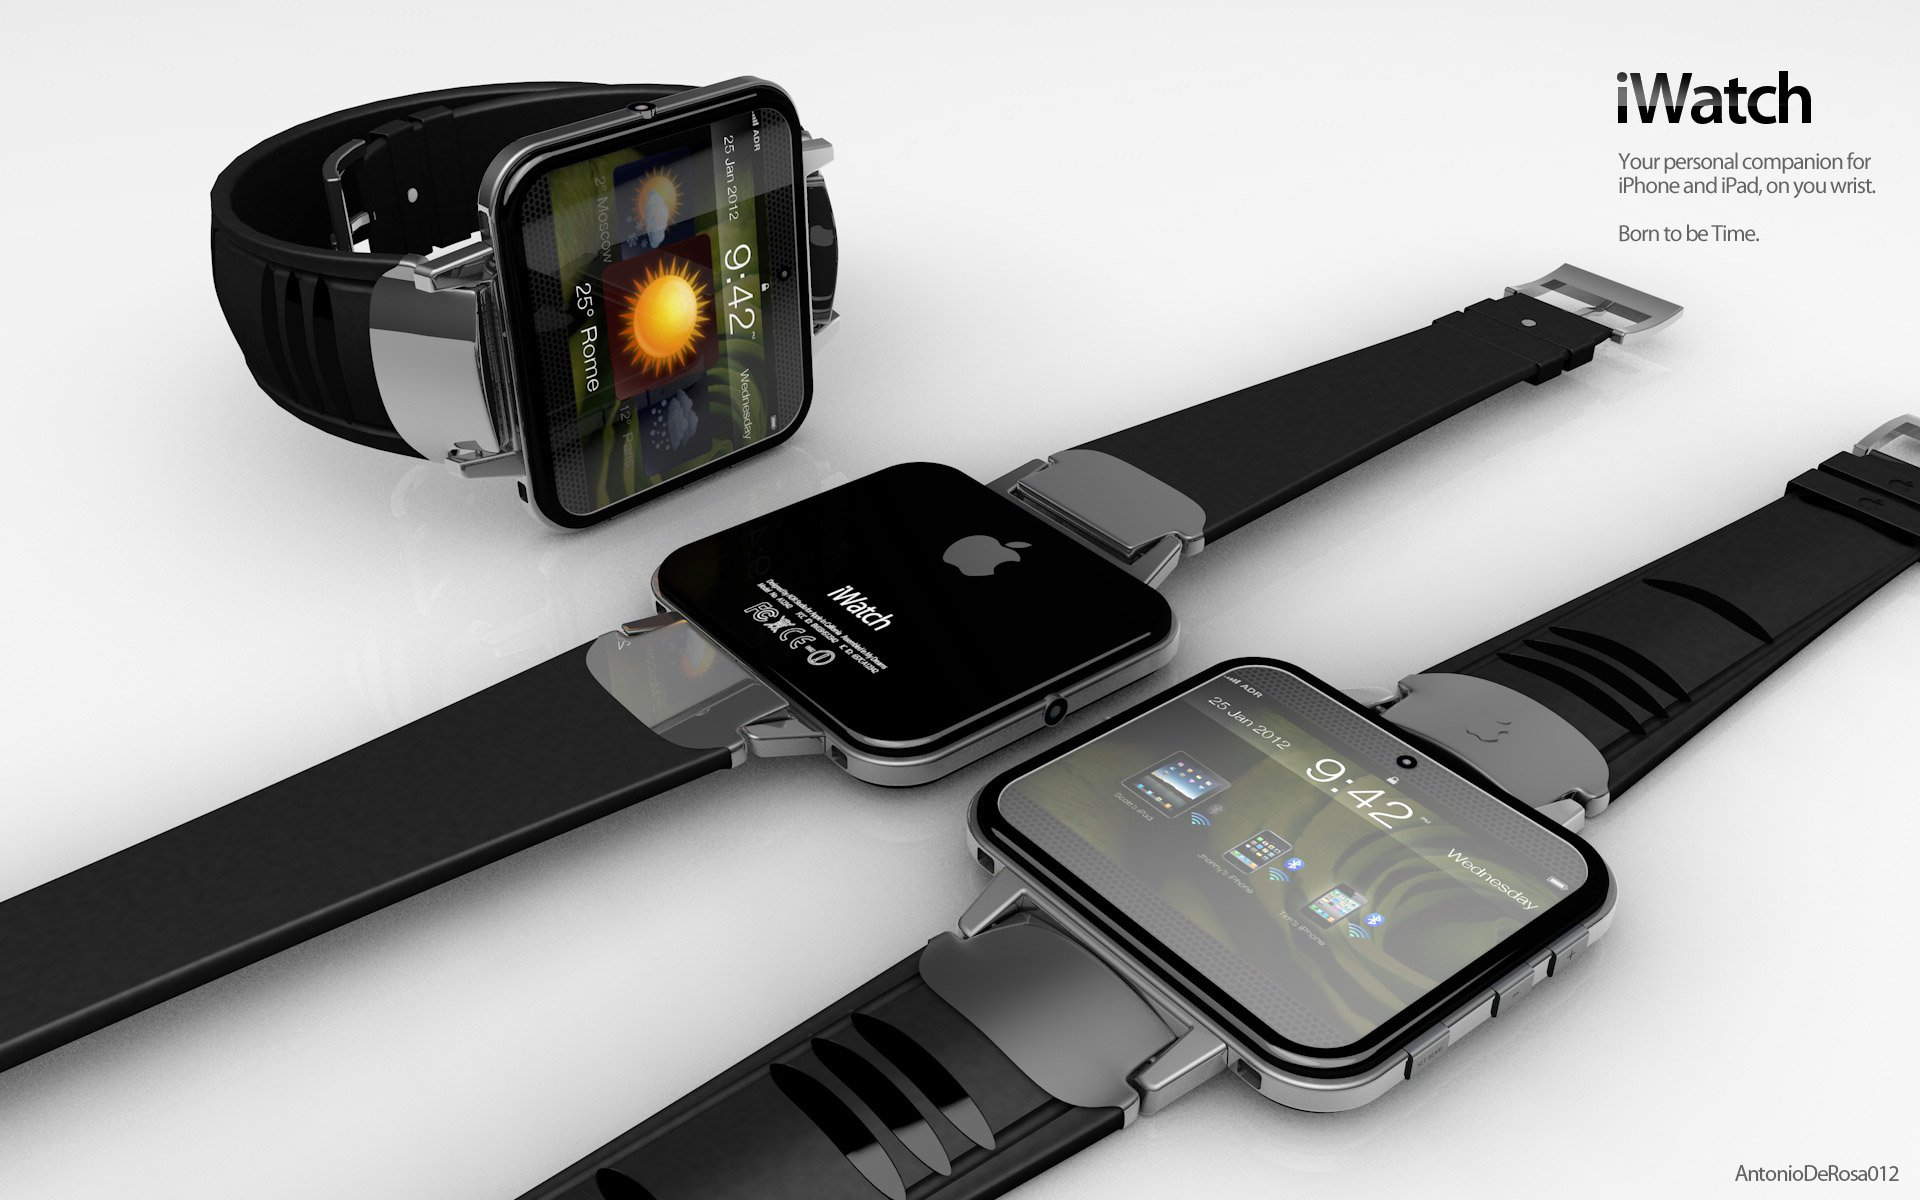 Apple Extends 'iWatch' Trademark Filings to Taiwan, Mexico, Turkey and Colombia